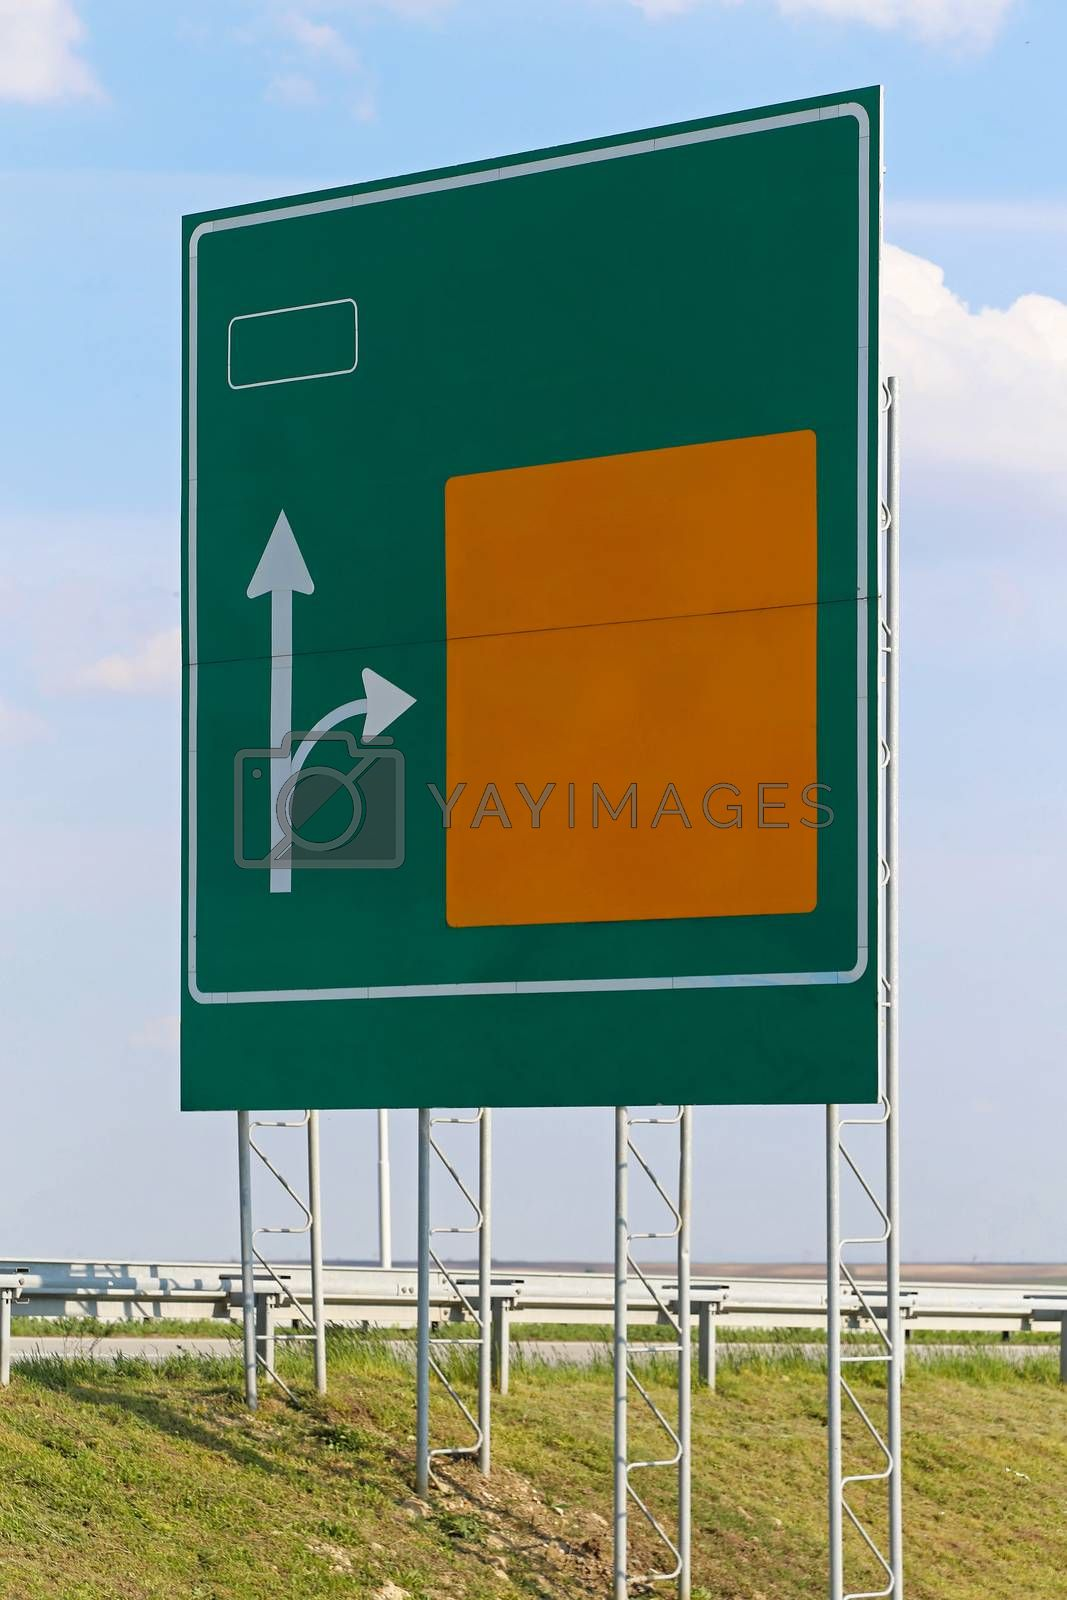 Royalty free image of Highway sign by Baloncici